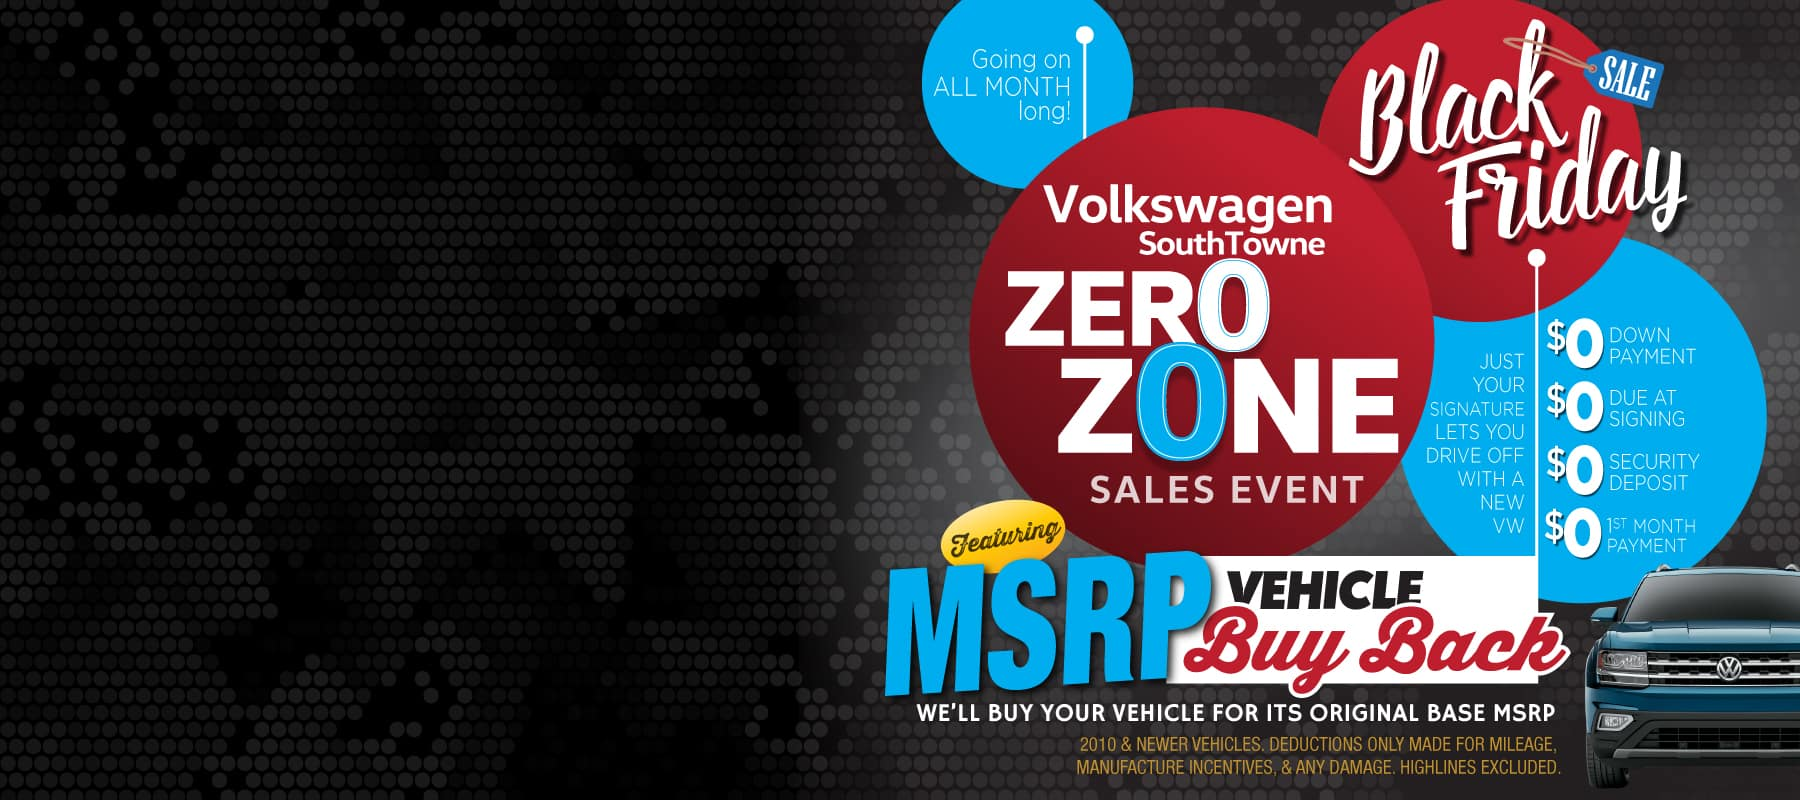 Black Friday Clearance Deals and ZERO ZONE at Volkswagen SouthTowne